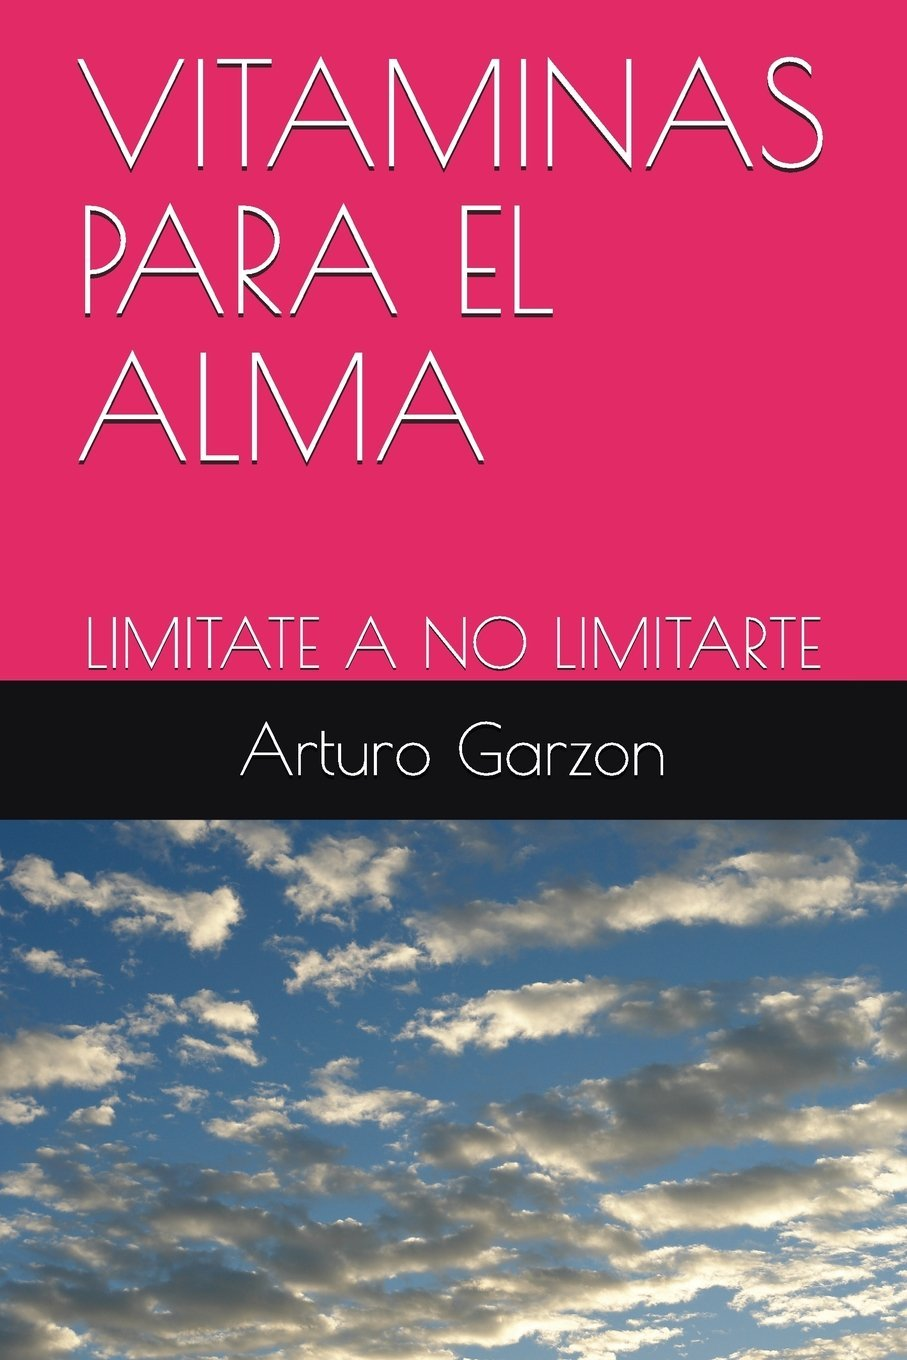 VITAMINAS PARA EL ALMA: liMITATE A NO LIMITARTE (Spanish Edition): Mr. Arturo Garzon Jr: 9781717964380: Amazon.com: Books